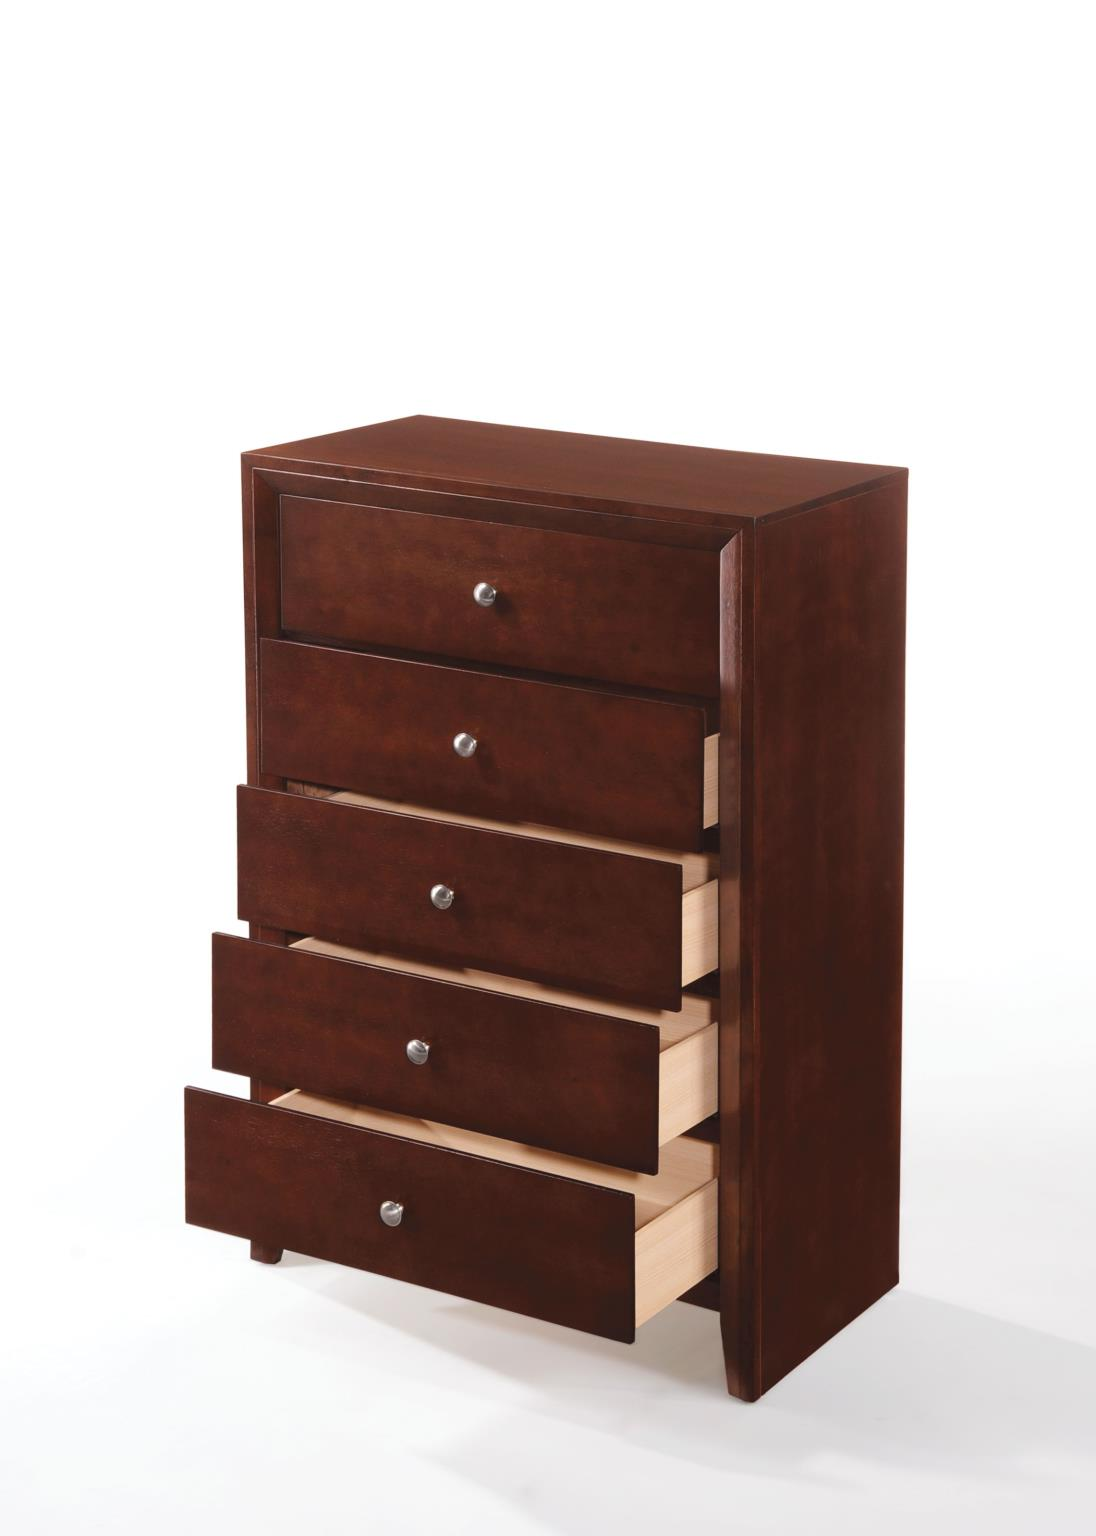 Chest w/ Drawers Opened